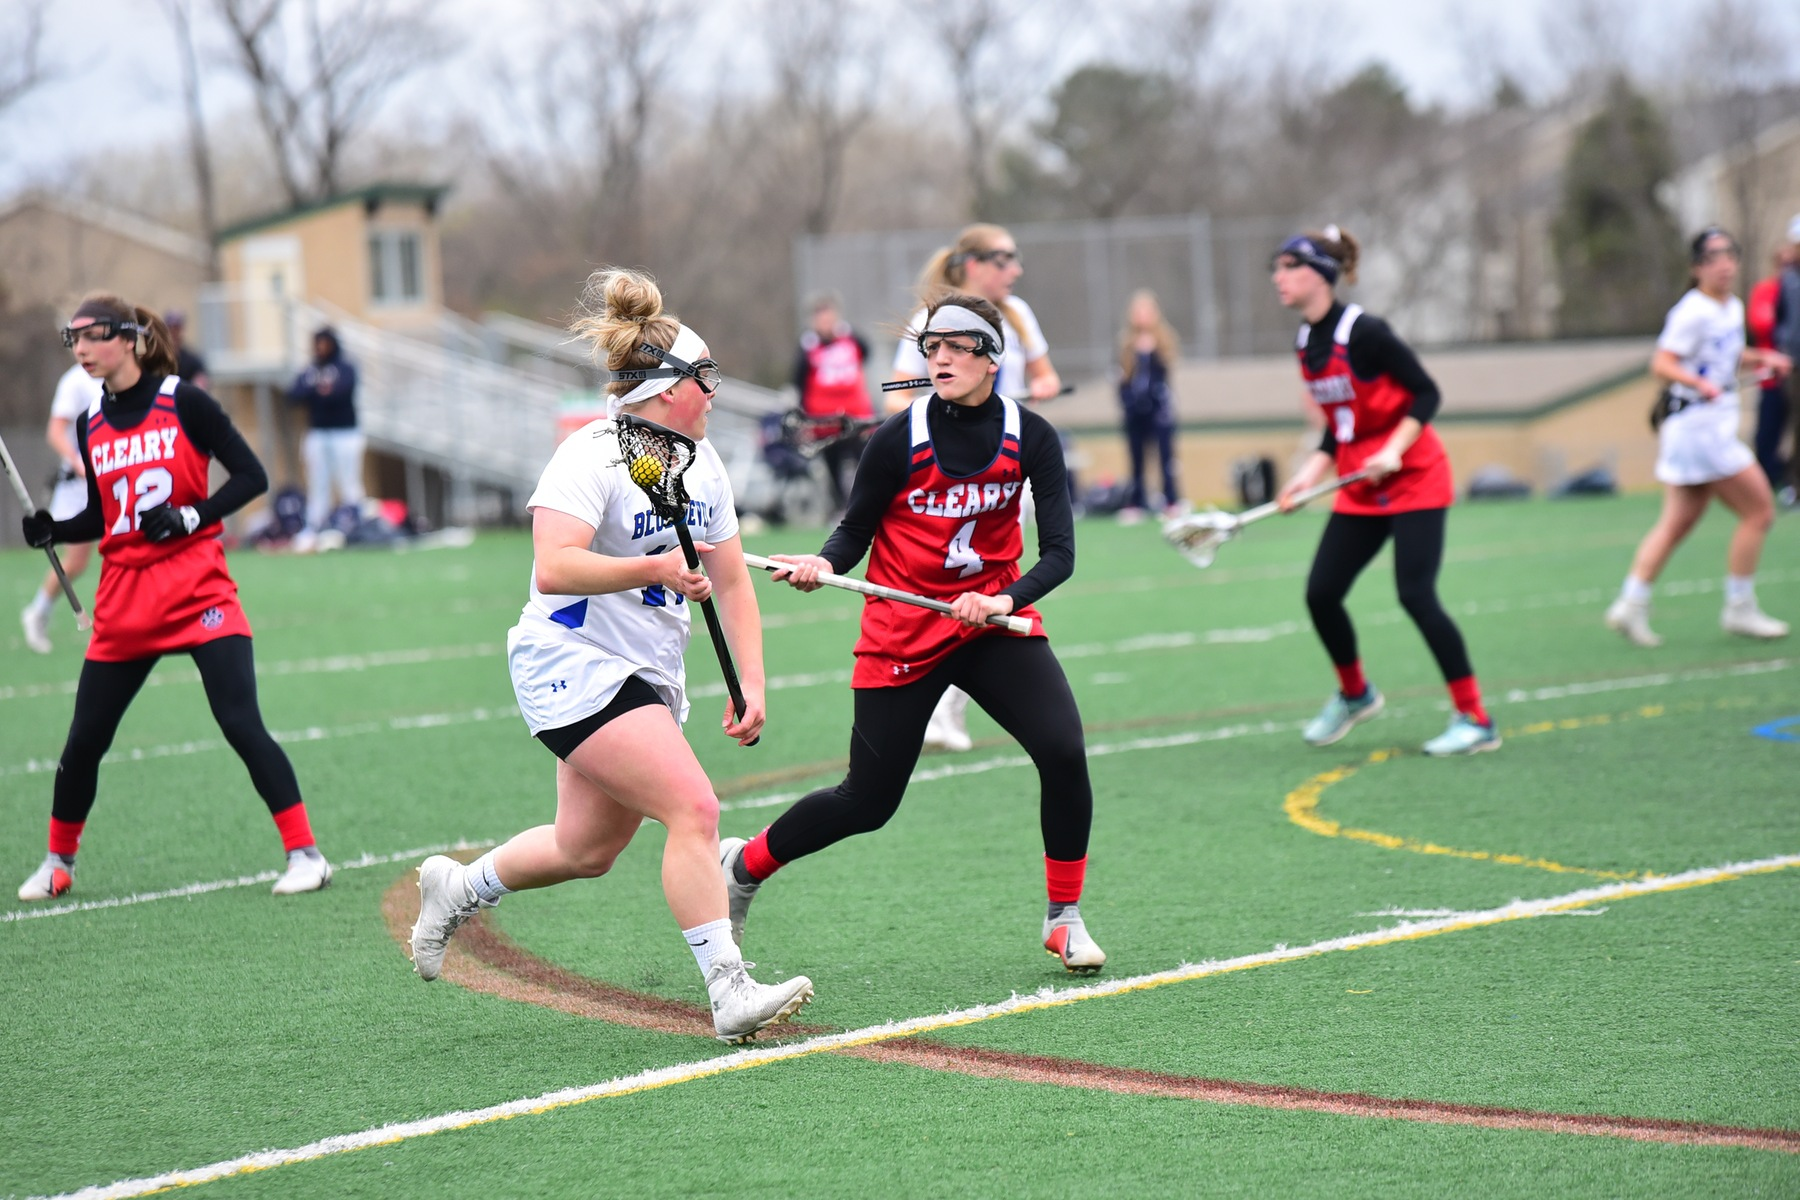 Women's Lacrosse Enter WHAC Championships with 21-7 Win over Cleary; Face Indiana Tech in Conference Finals on Saturday